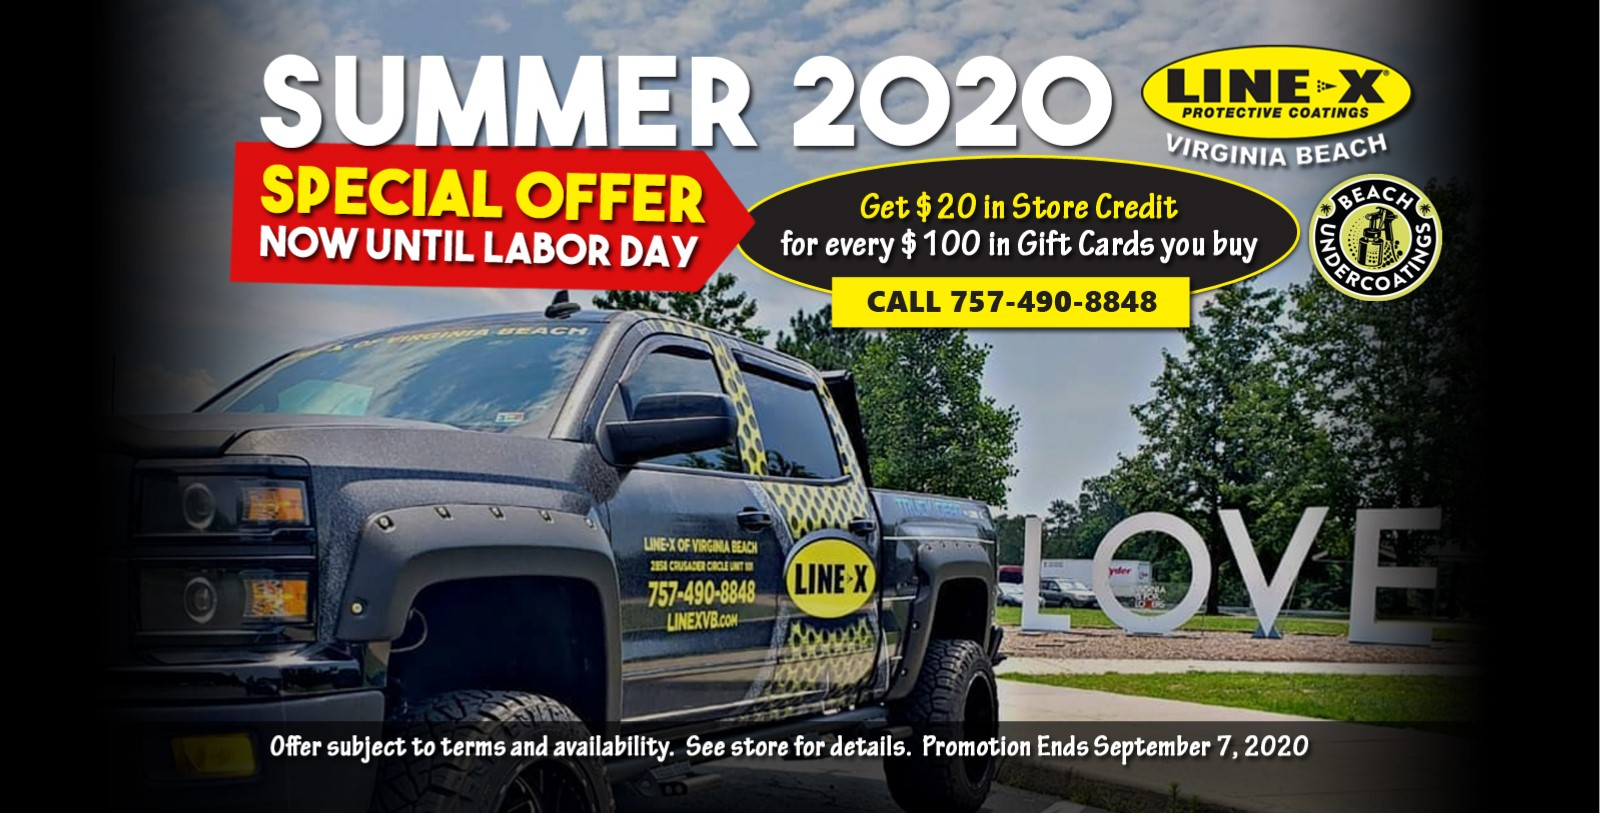 Summer 2020 Special Offer - Get $20 in store credits for every $100 in gift cards you buy between now and Labor Day